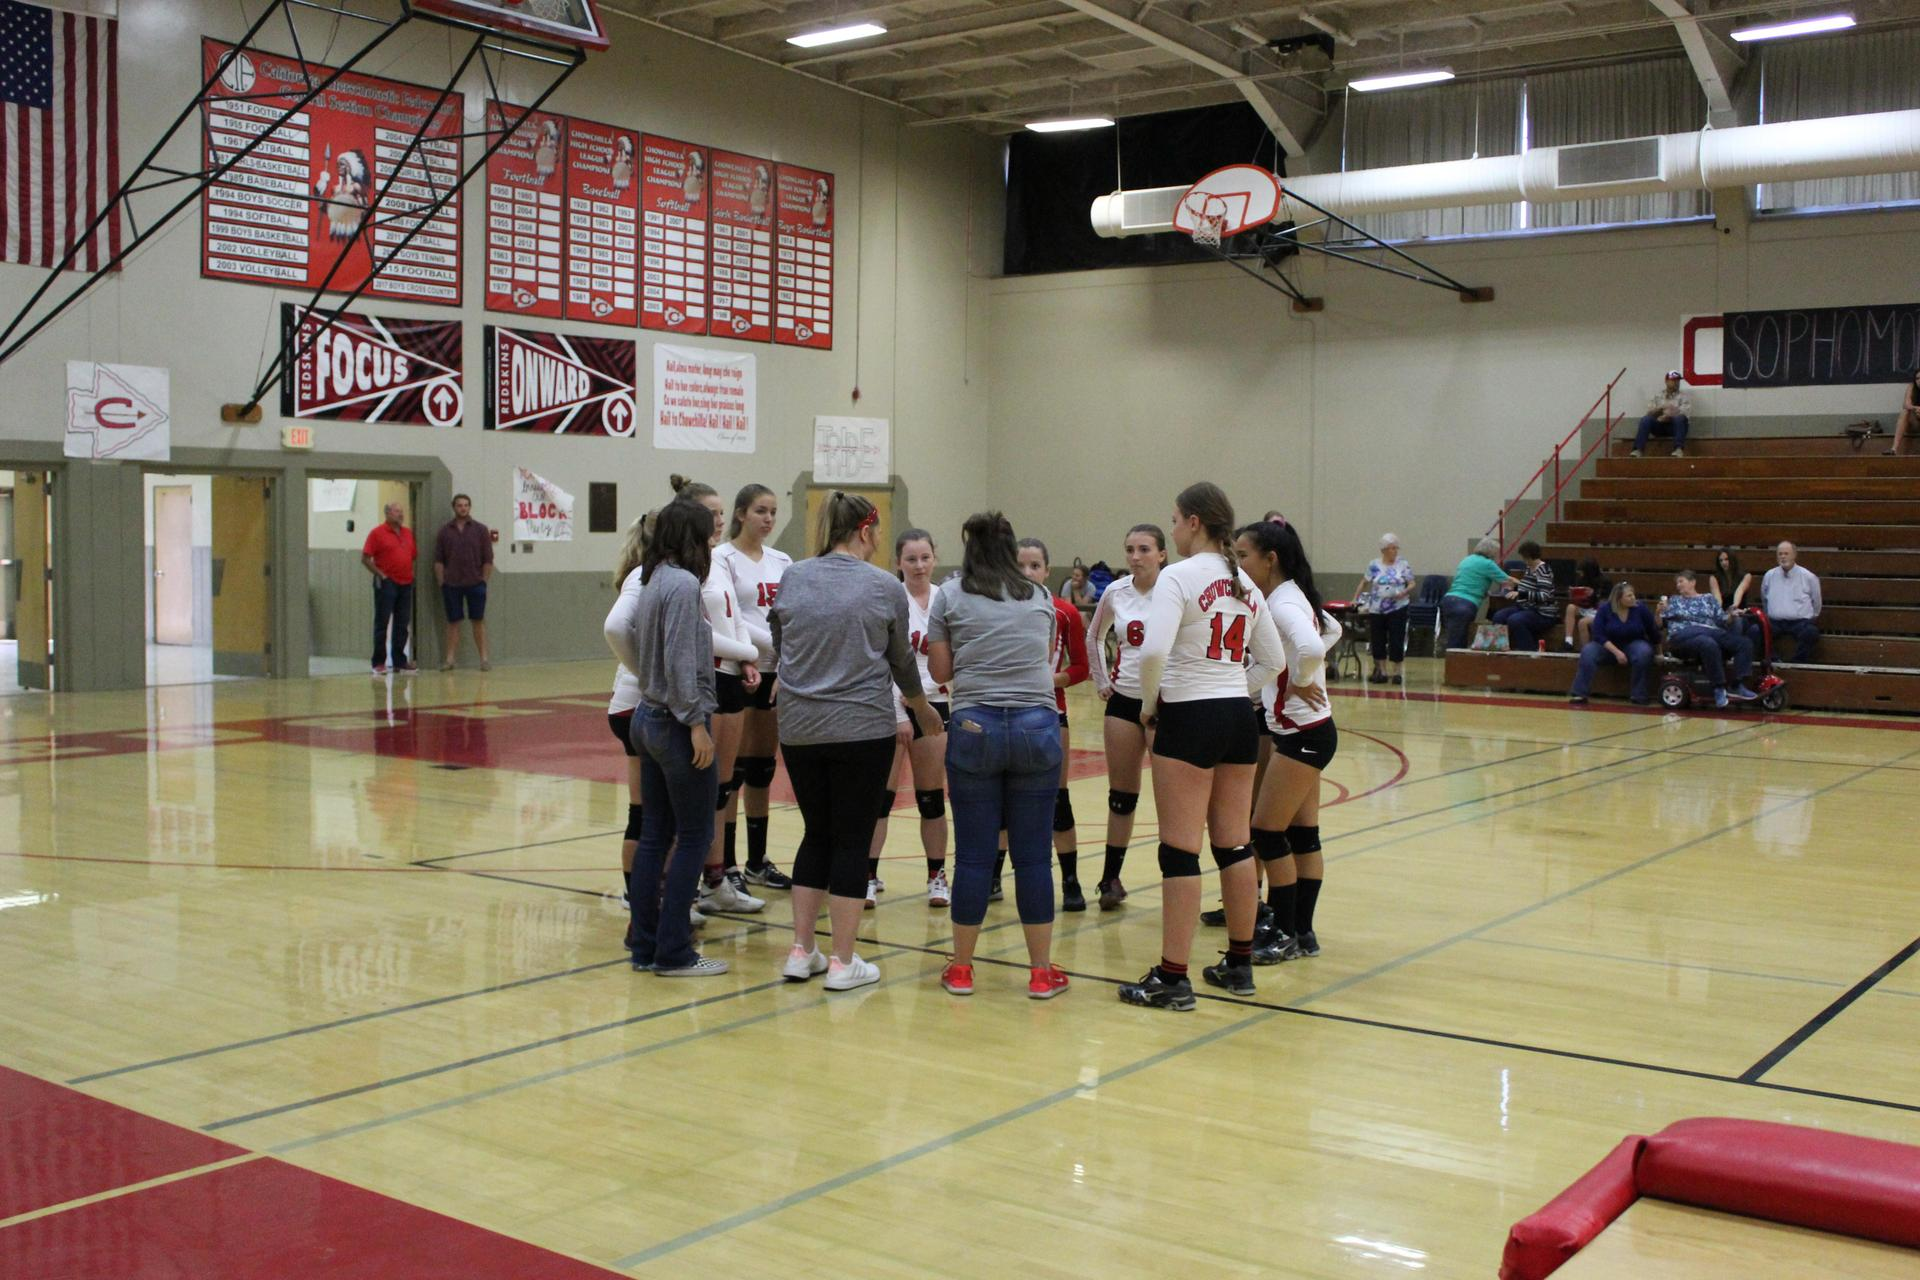 JV Girls playing volleyball against Yosemite